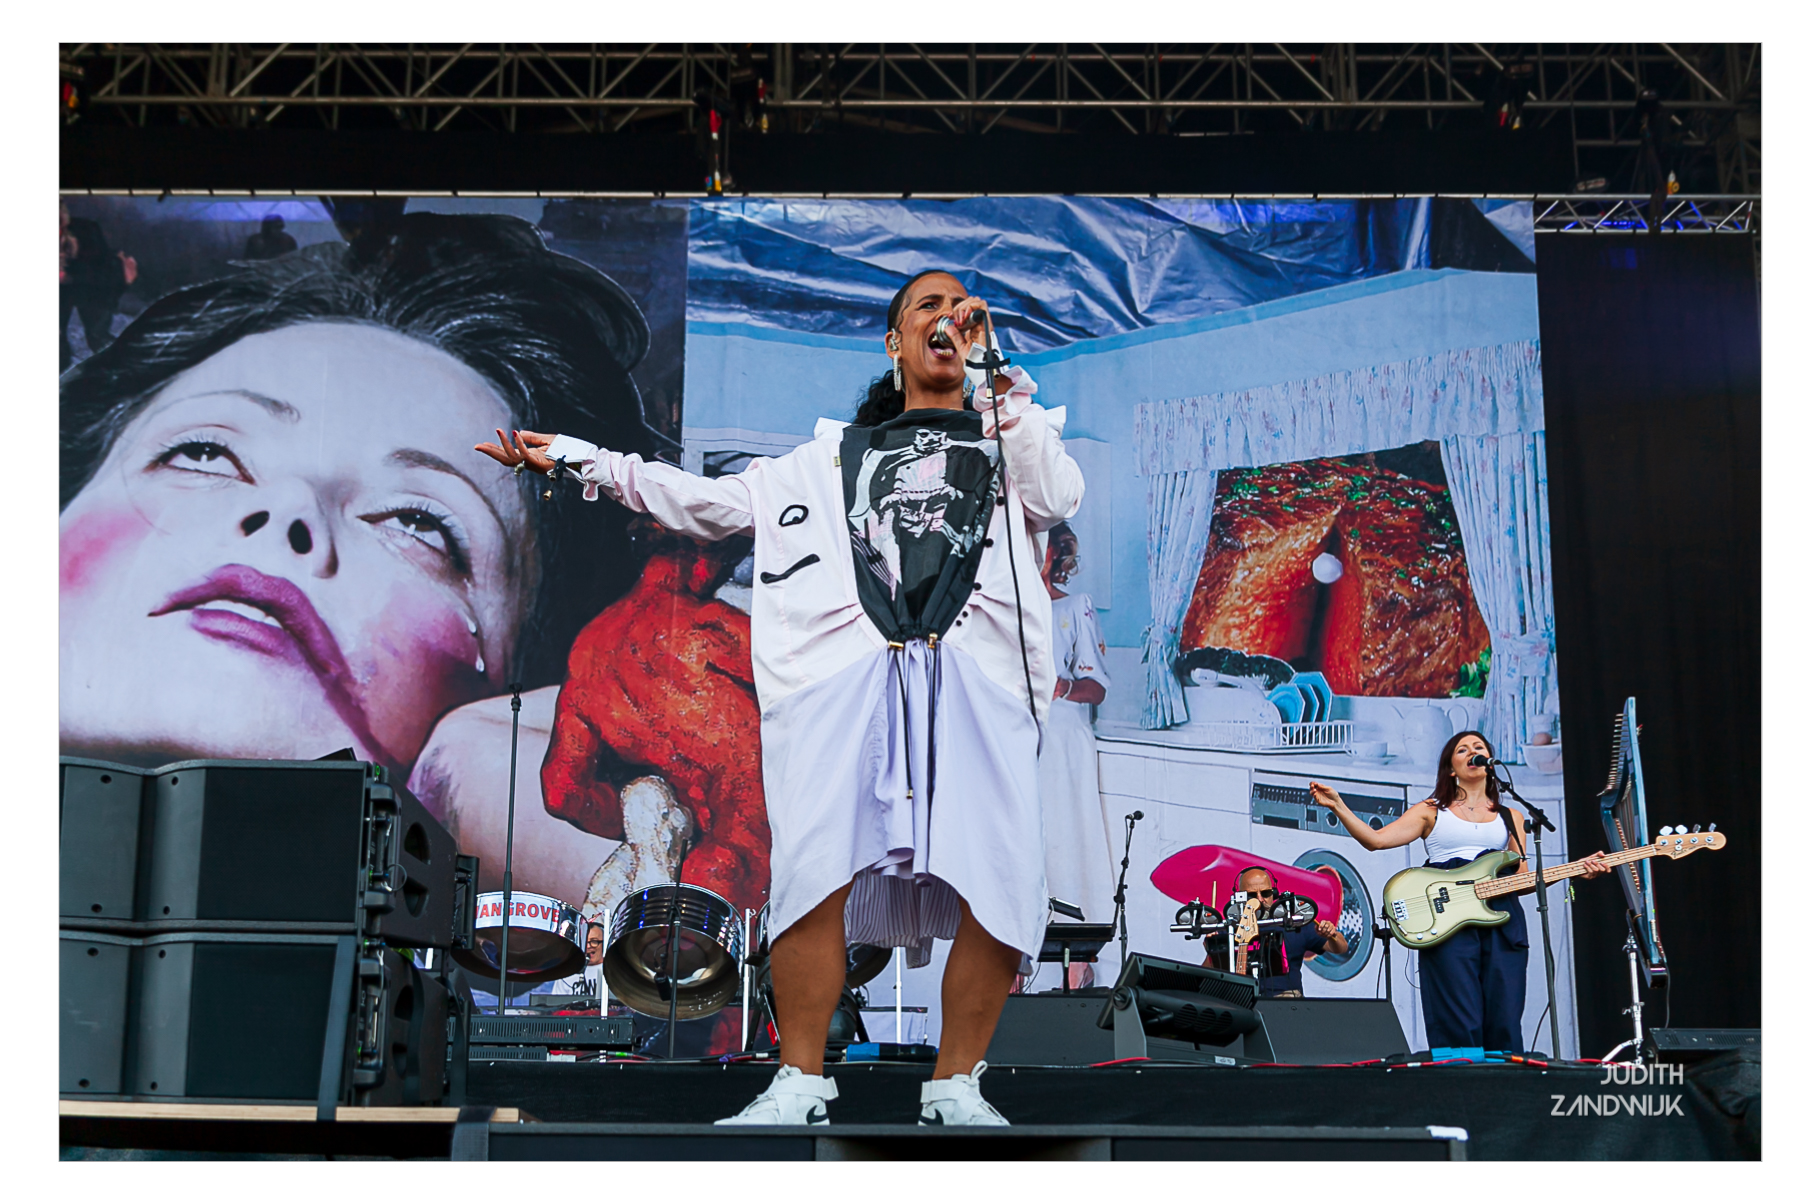 Neneh Cherry-31-08-2019 The Downs Bristol-ATL-@Judith Zandwijk 01 (2)